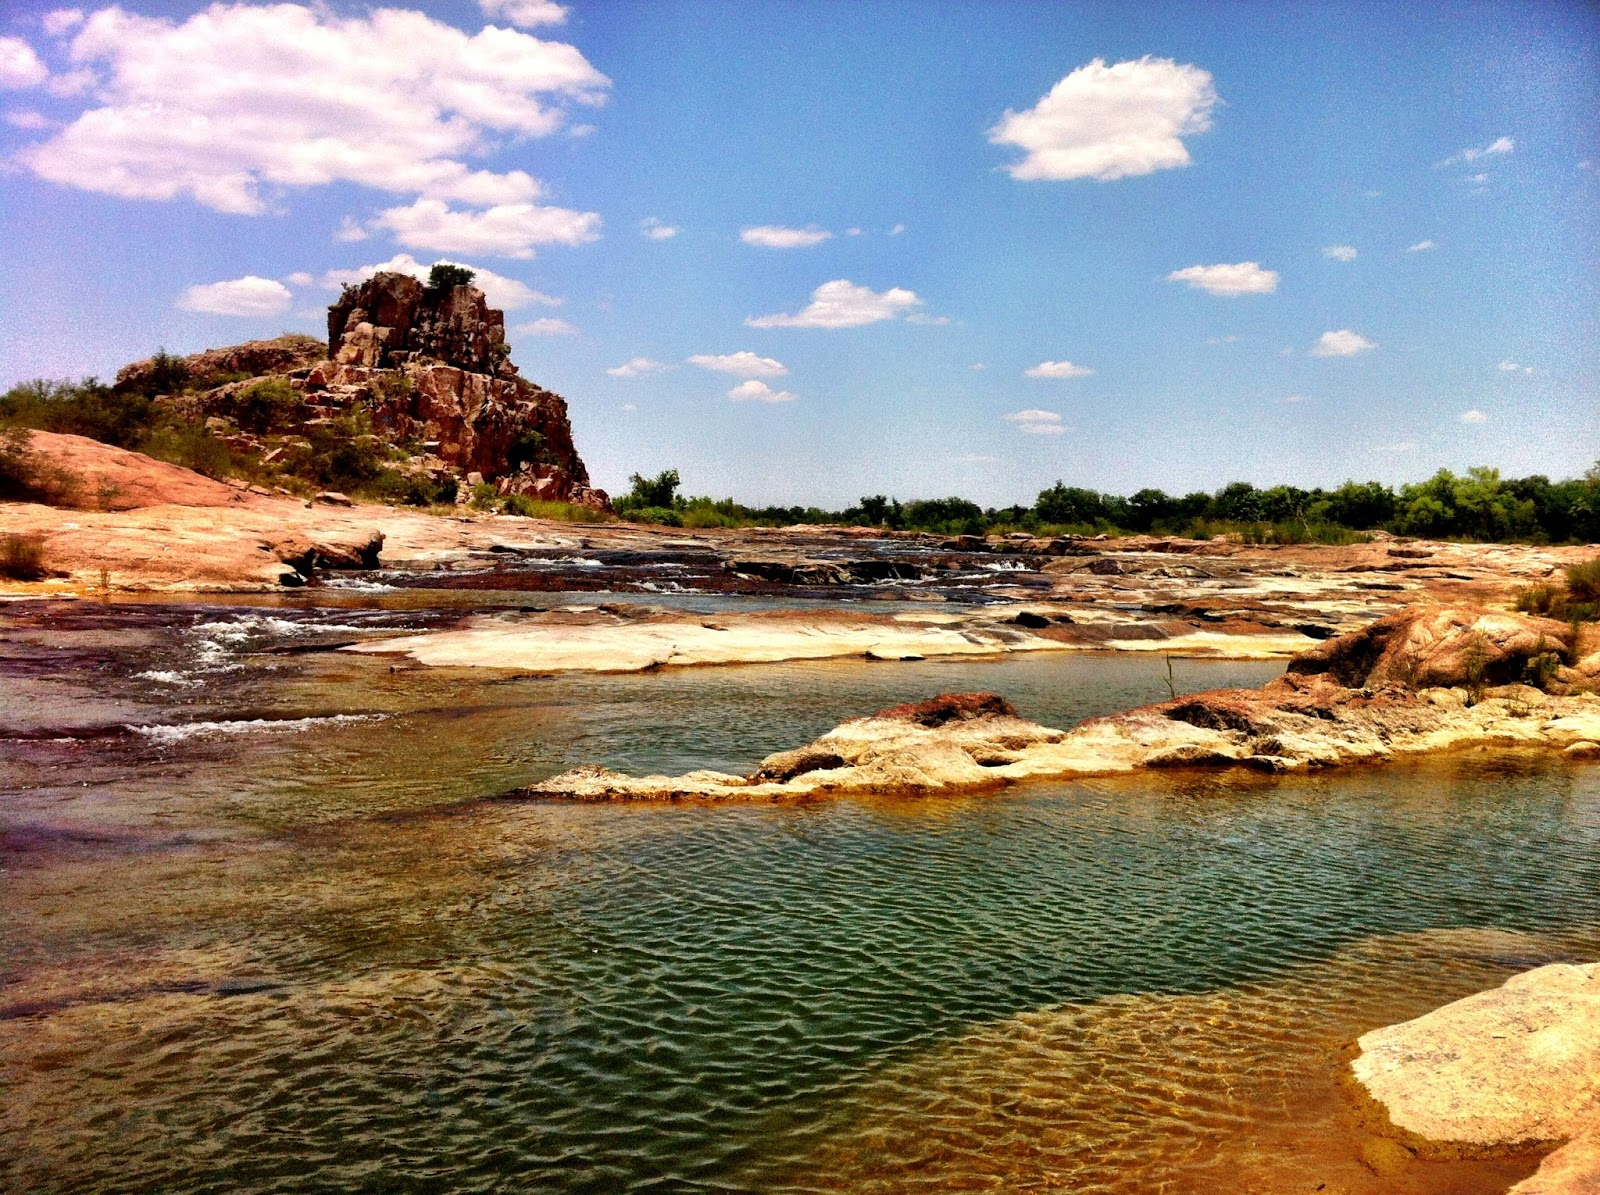 Fly fishing texas wading the llano for Fly fishing texas